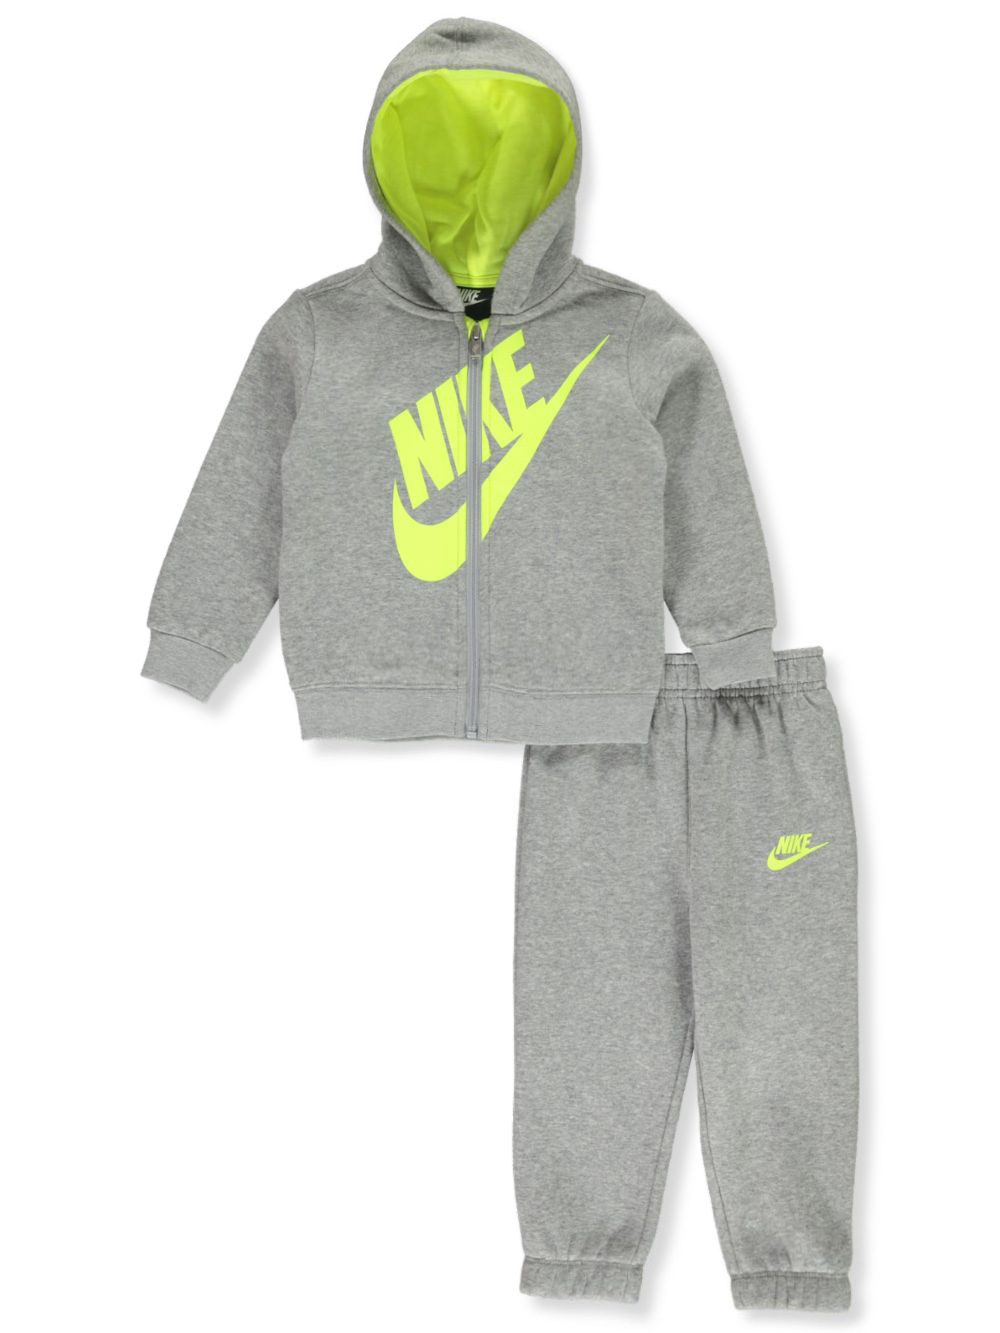 Baby Boys' 2-Piece Sweatsuit Outfit